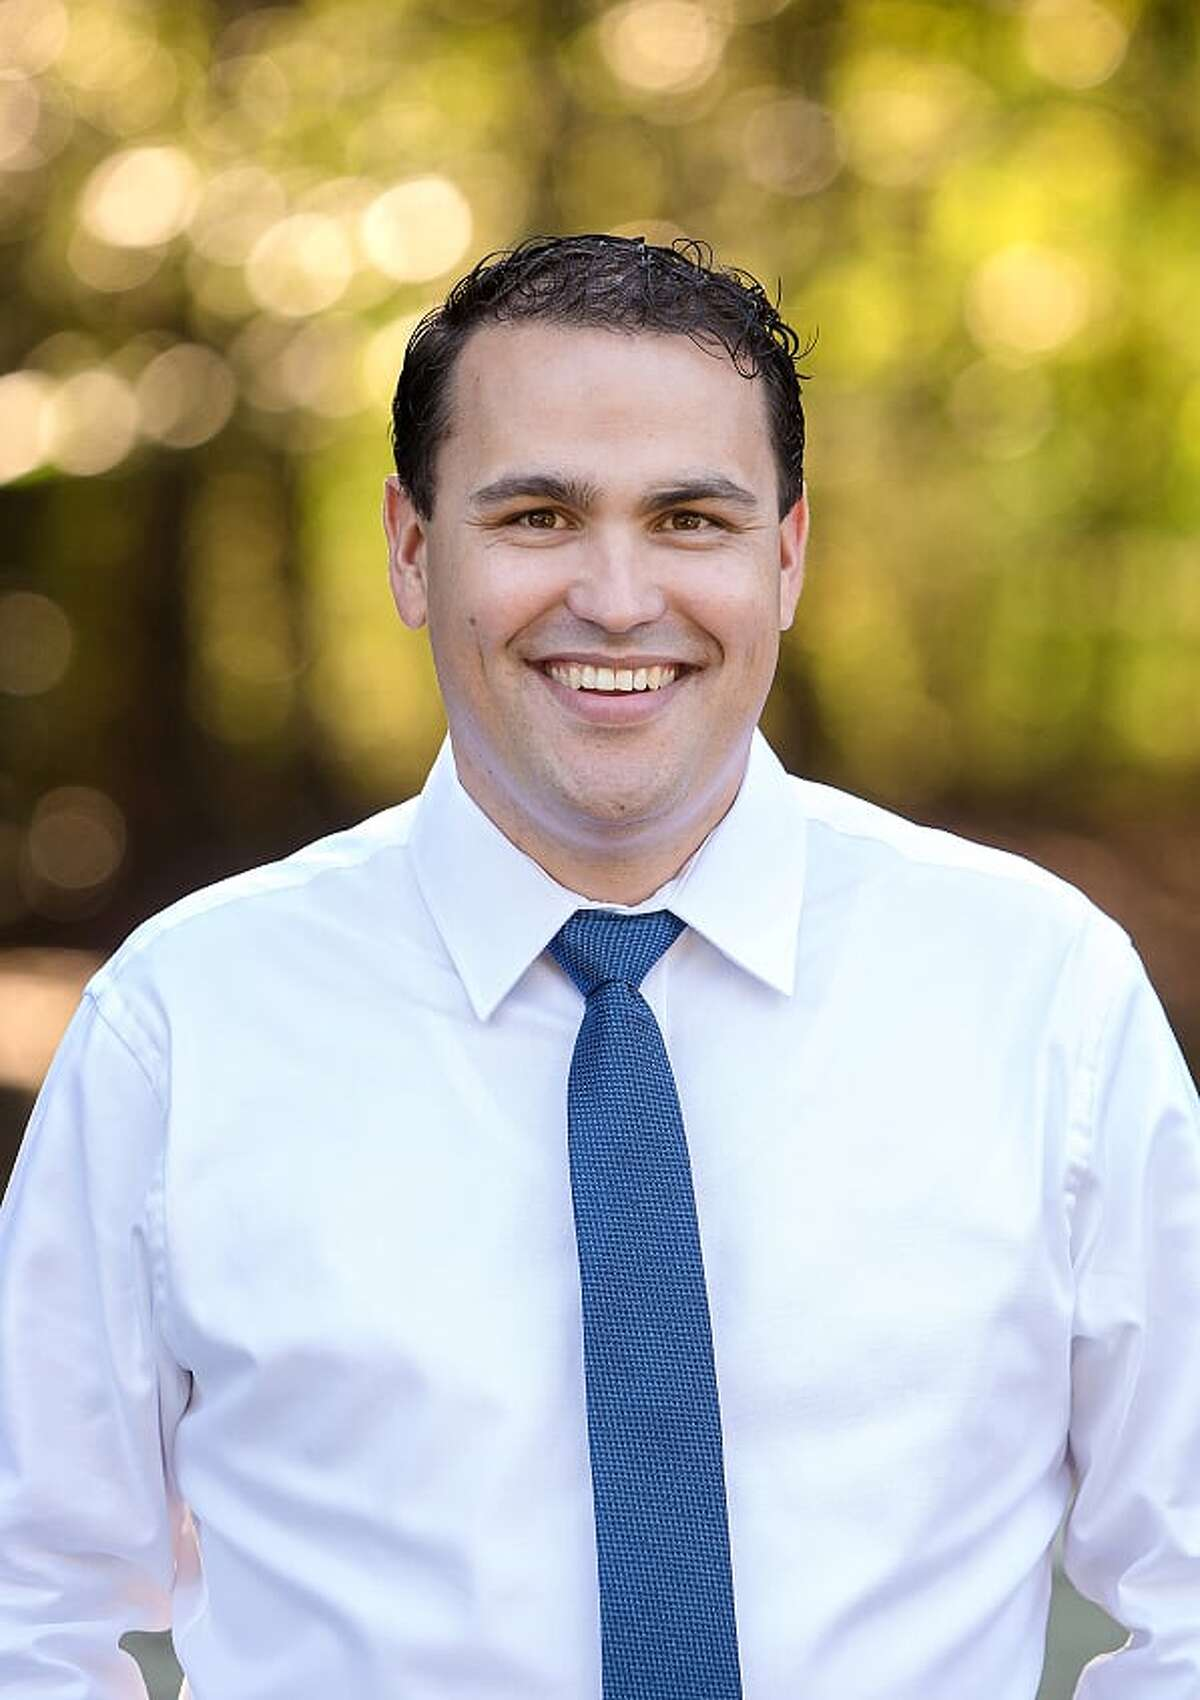 Former Homeland Security Department employee Travis Olsen this week joined the race for Texas' 2nd Congressional District